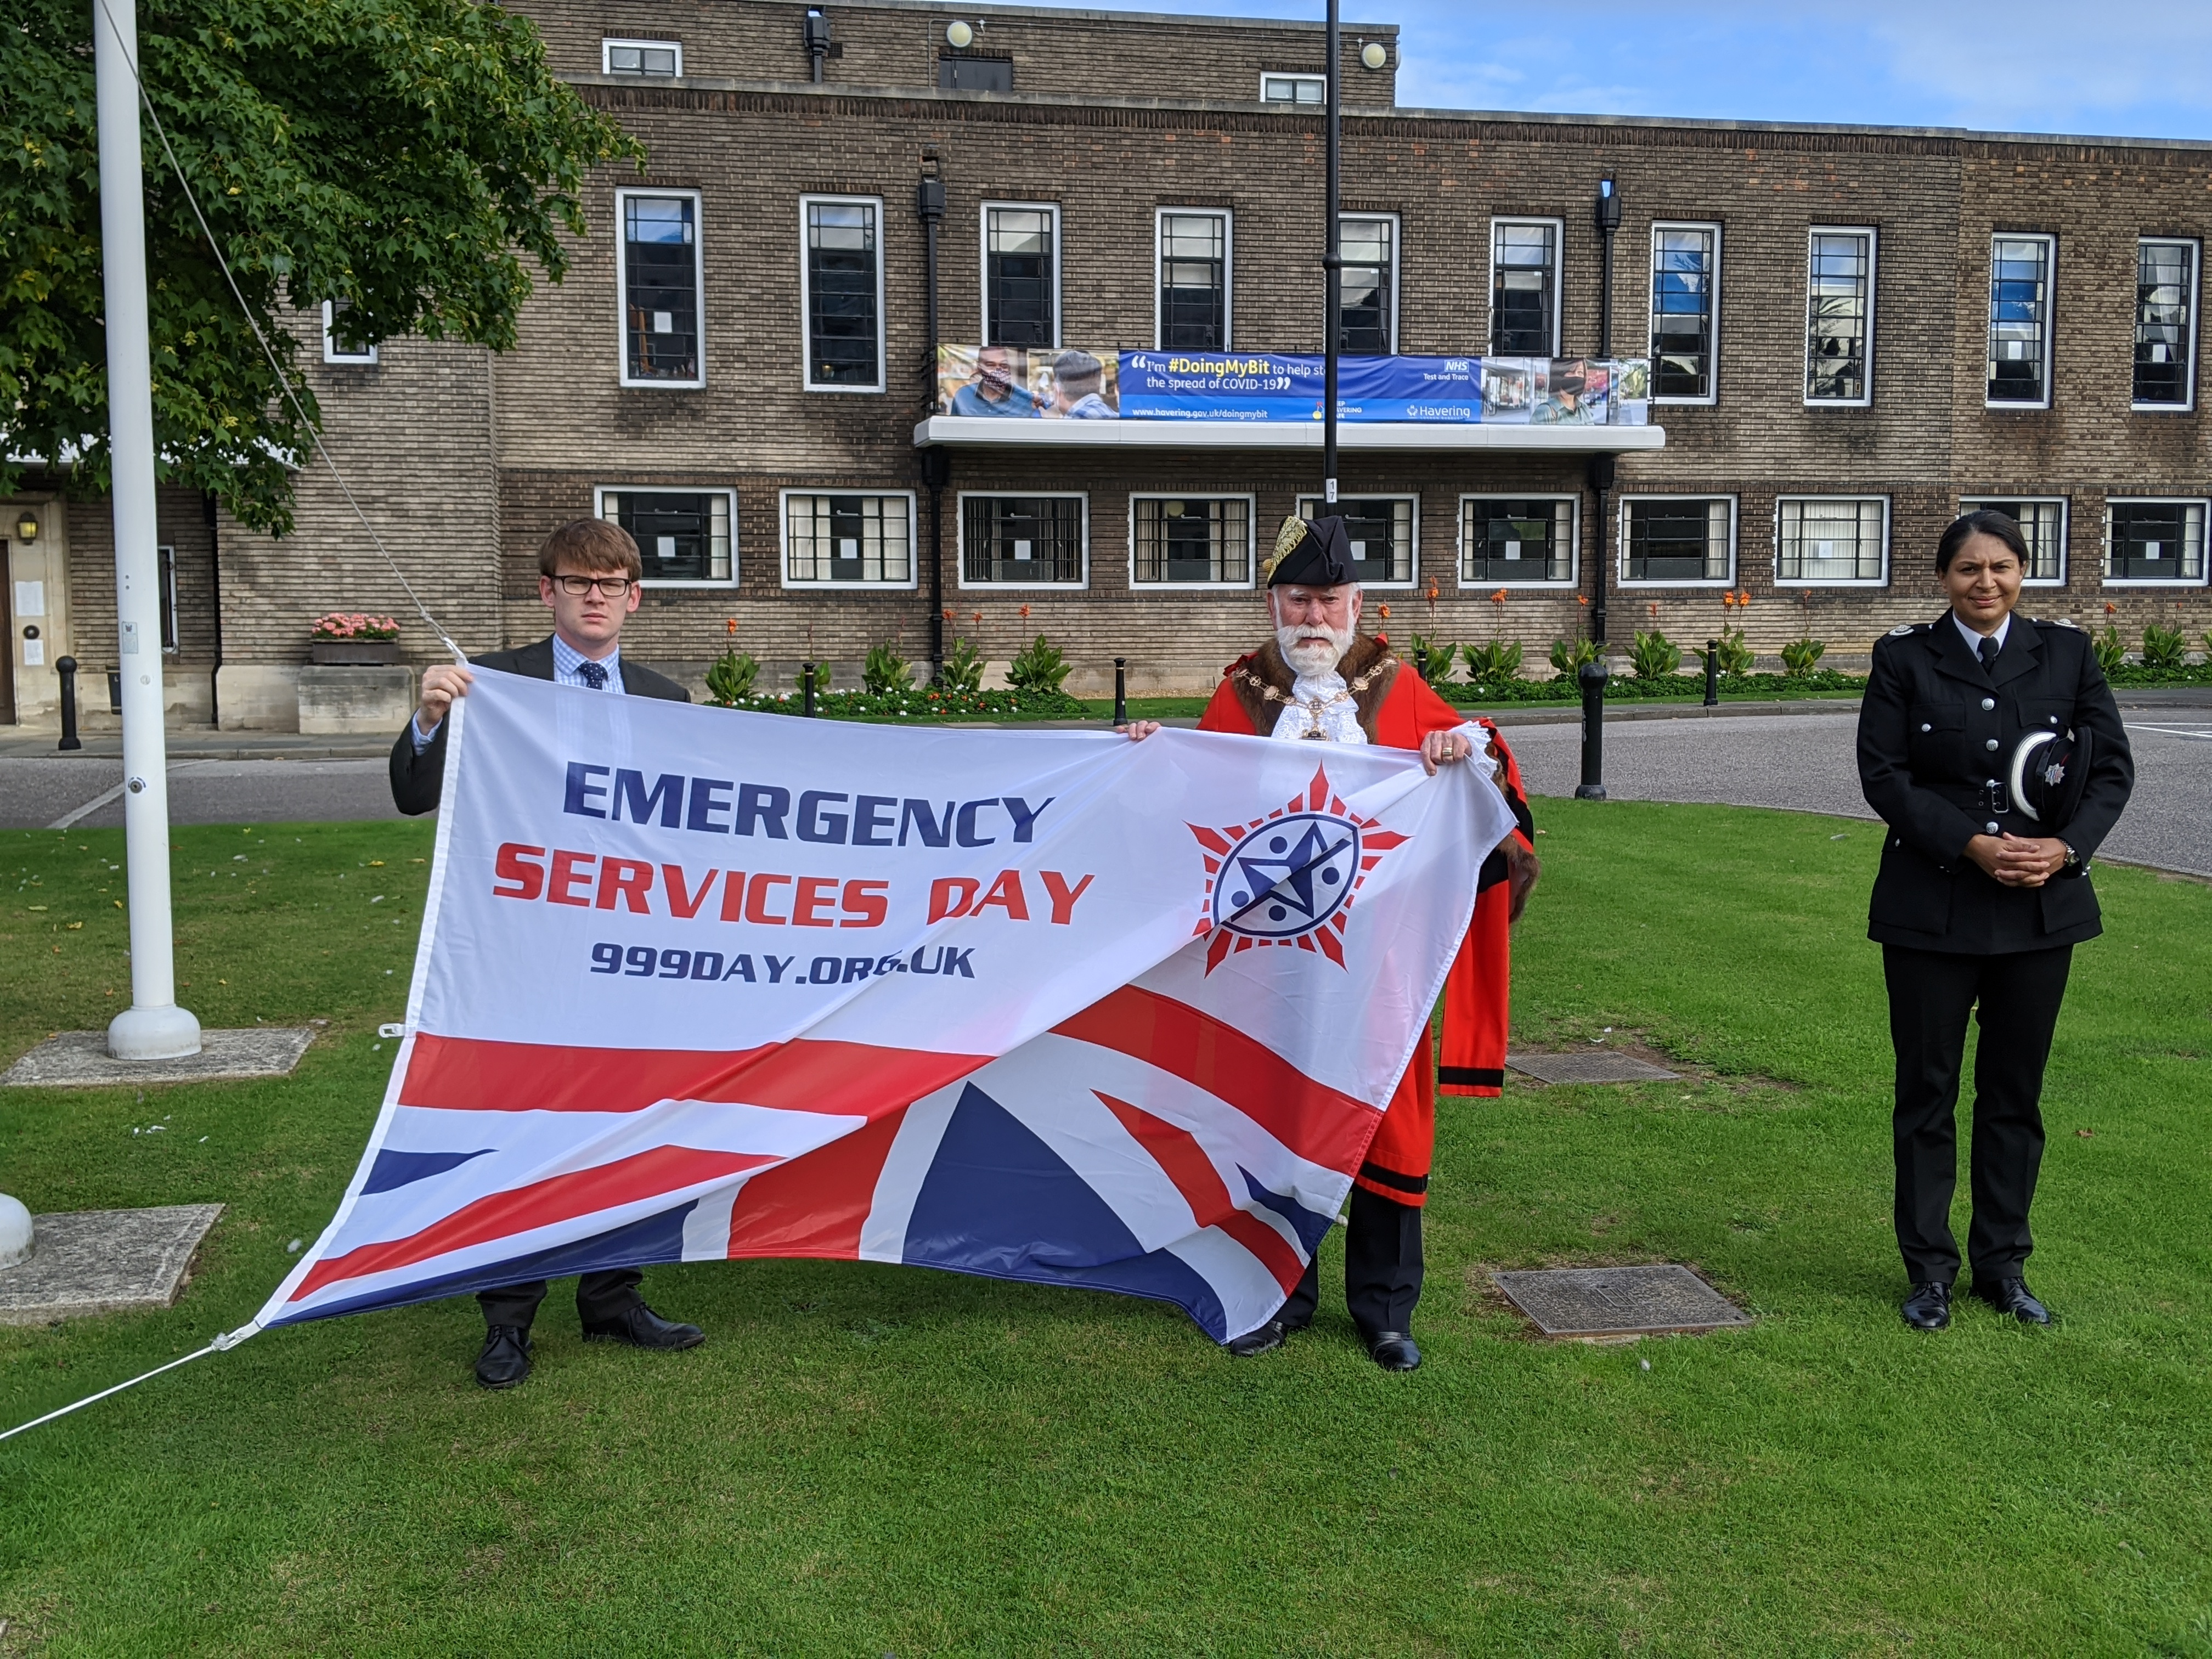 Councillor John Mylod, Mayor of Havering, Councillor Damian White, Leader of Havering Council, and Narinder Dail, Fire Borough Commander raise the flag to mark Emergency Services Day.